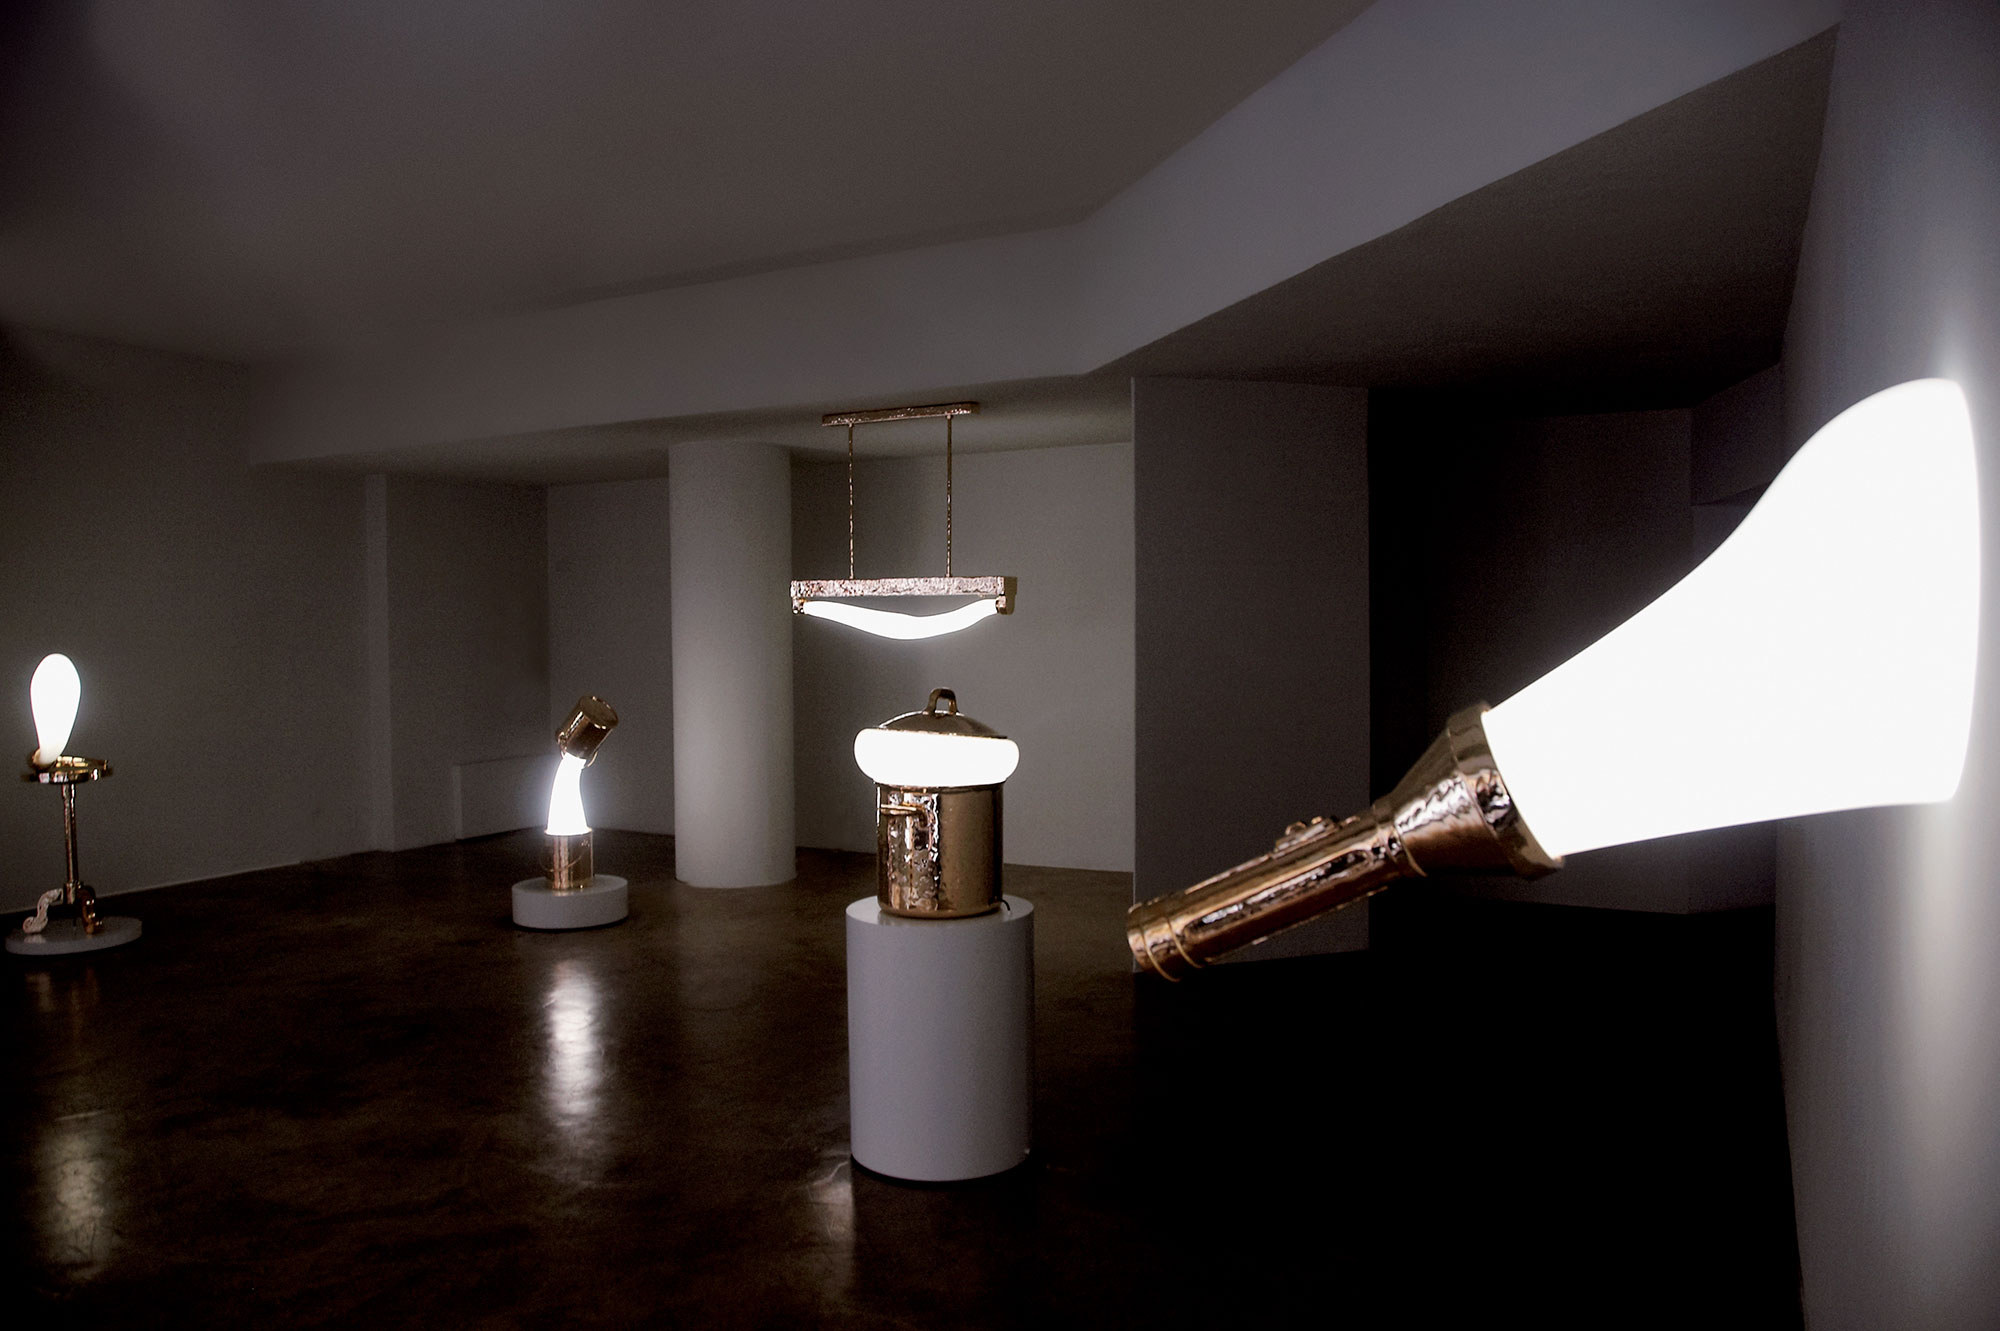 Studio-Job-Wonderlamp-Dilmos-Milan-ph-Miriam-Bleeker-36